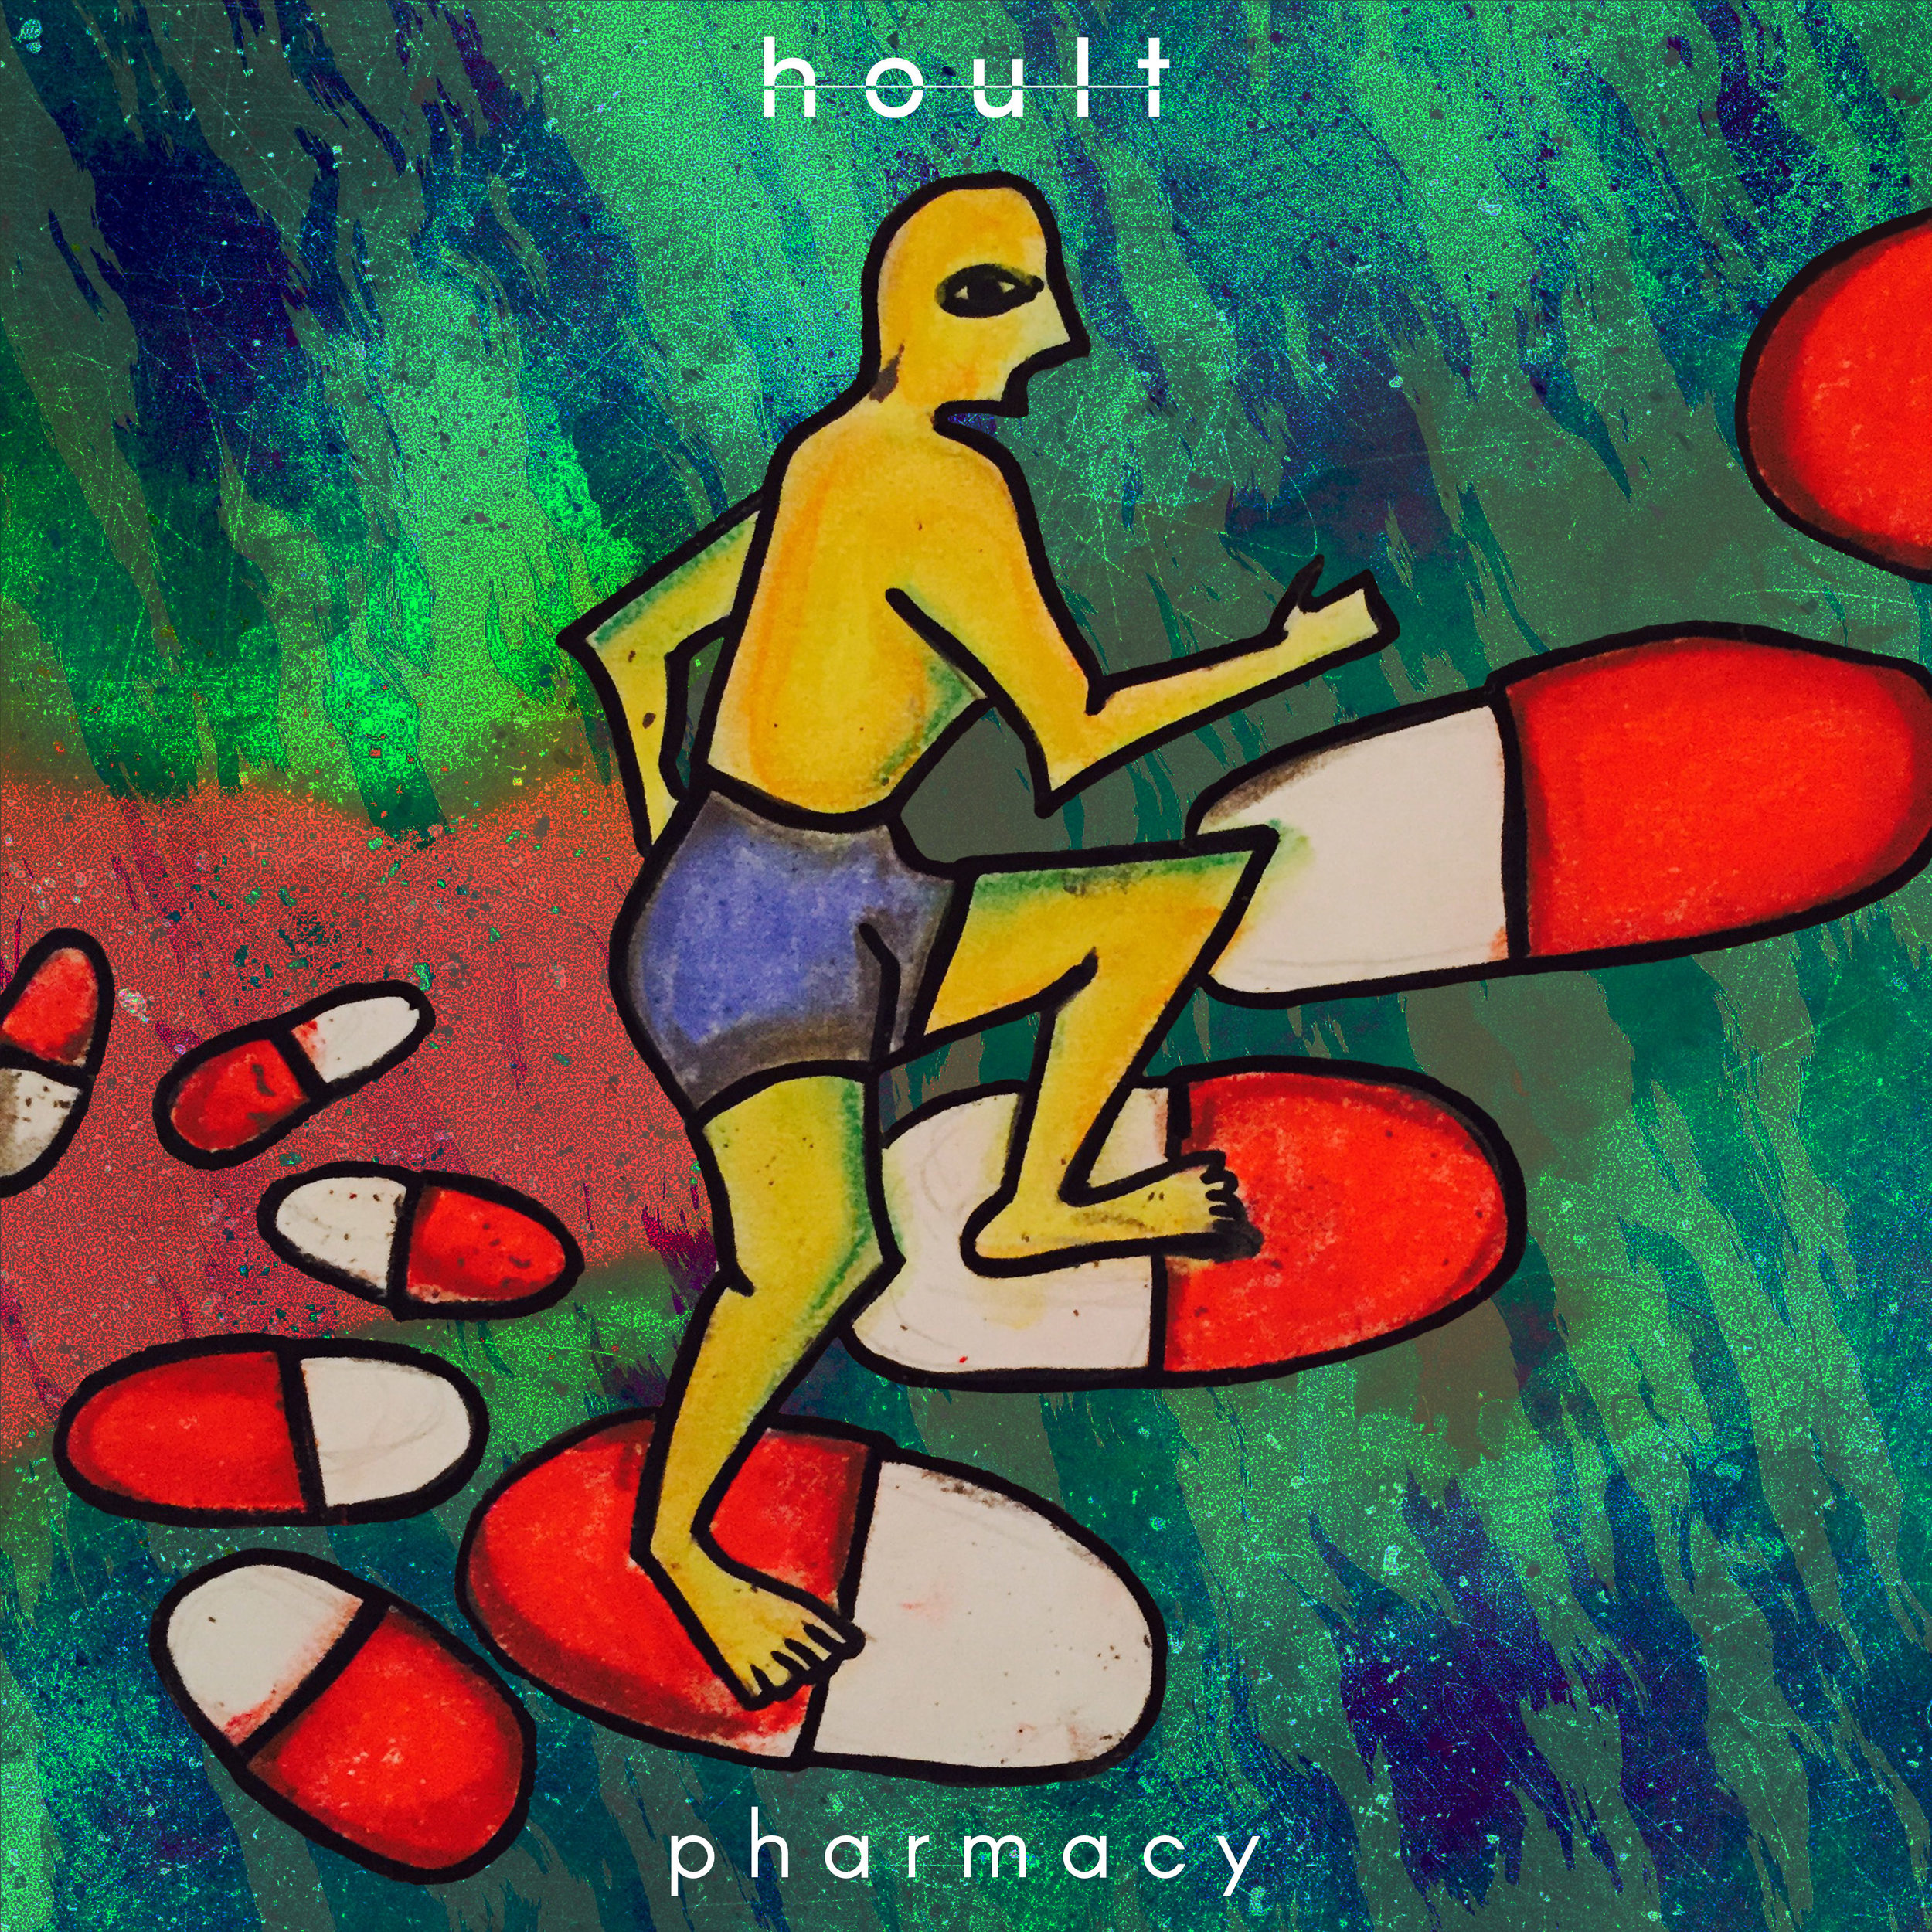 Pharmacy Single Cover Large.jpg